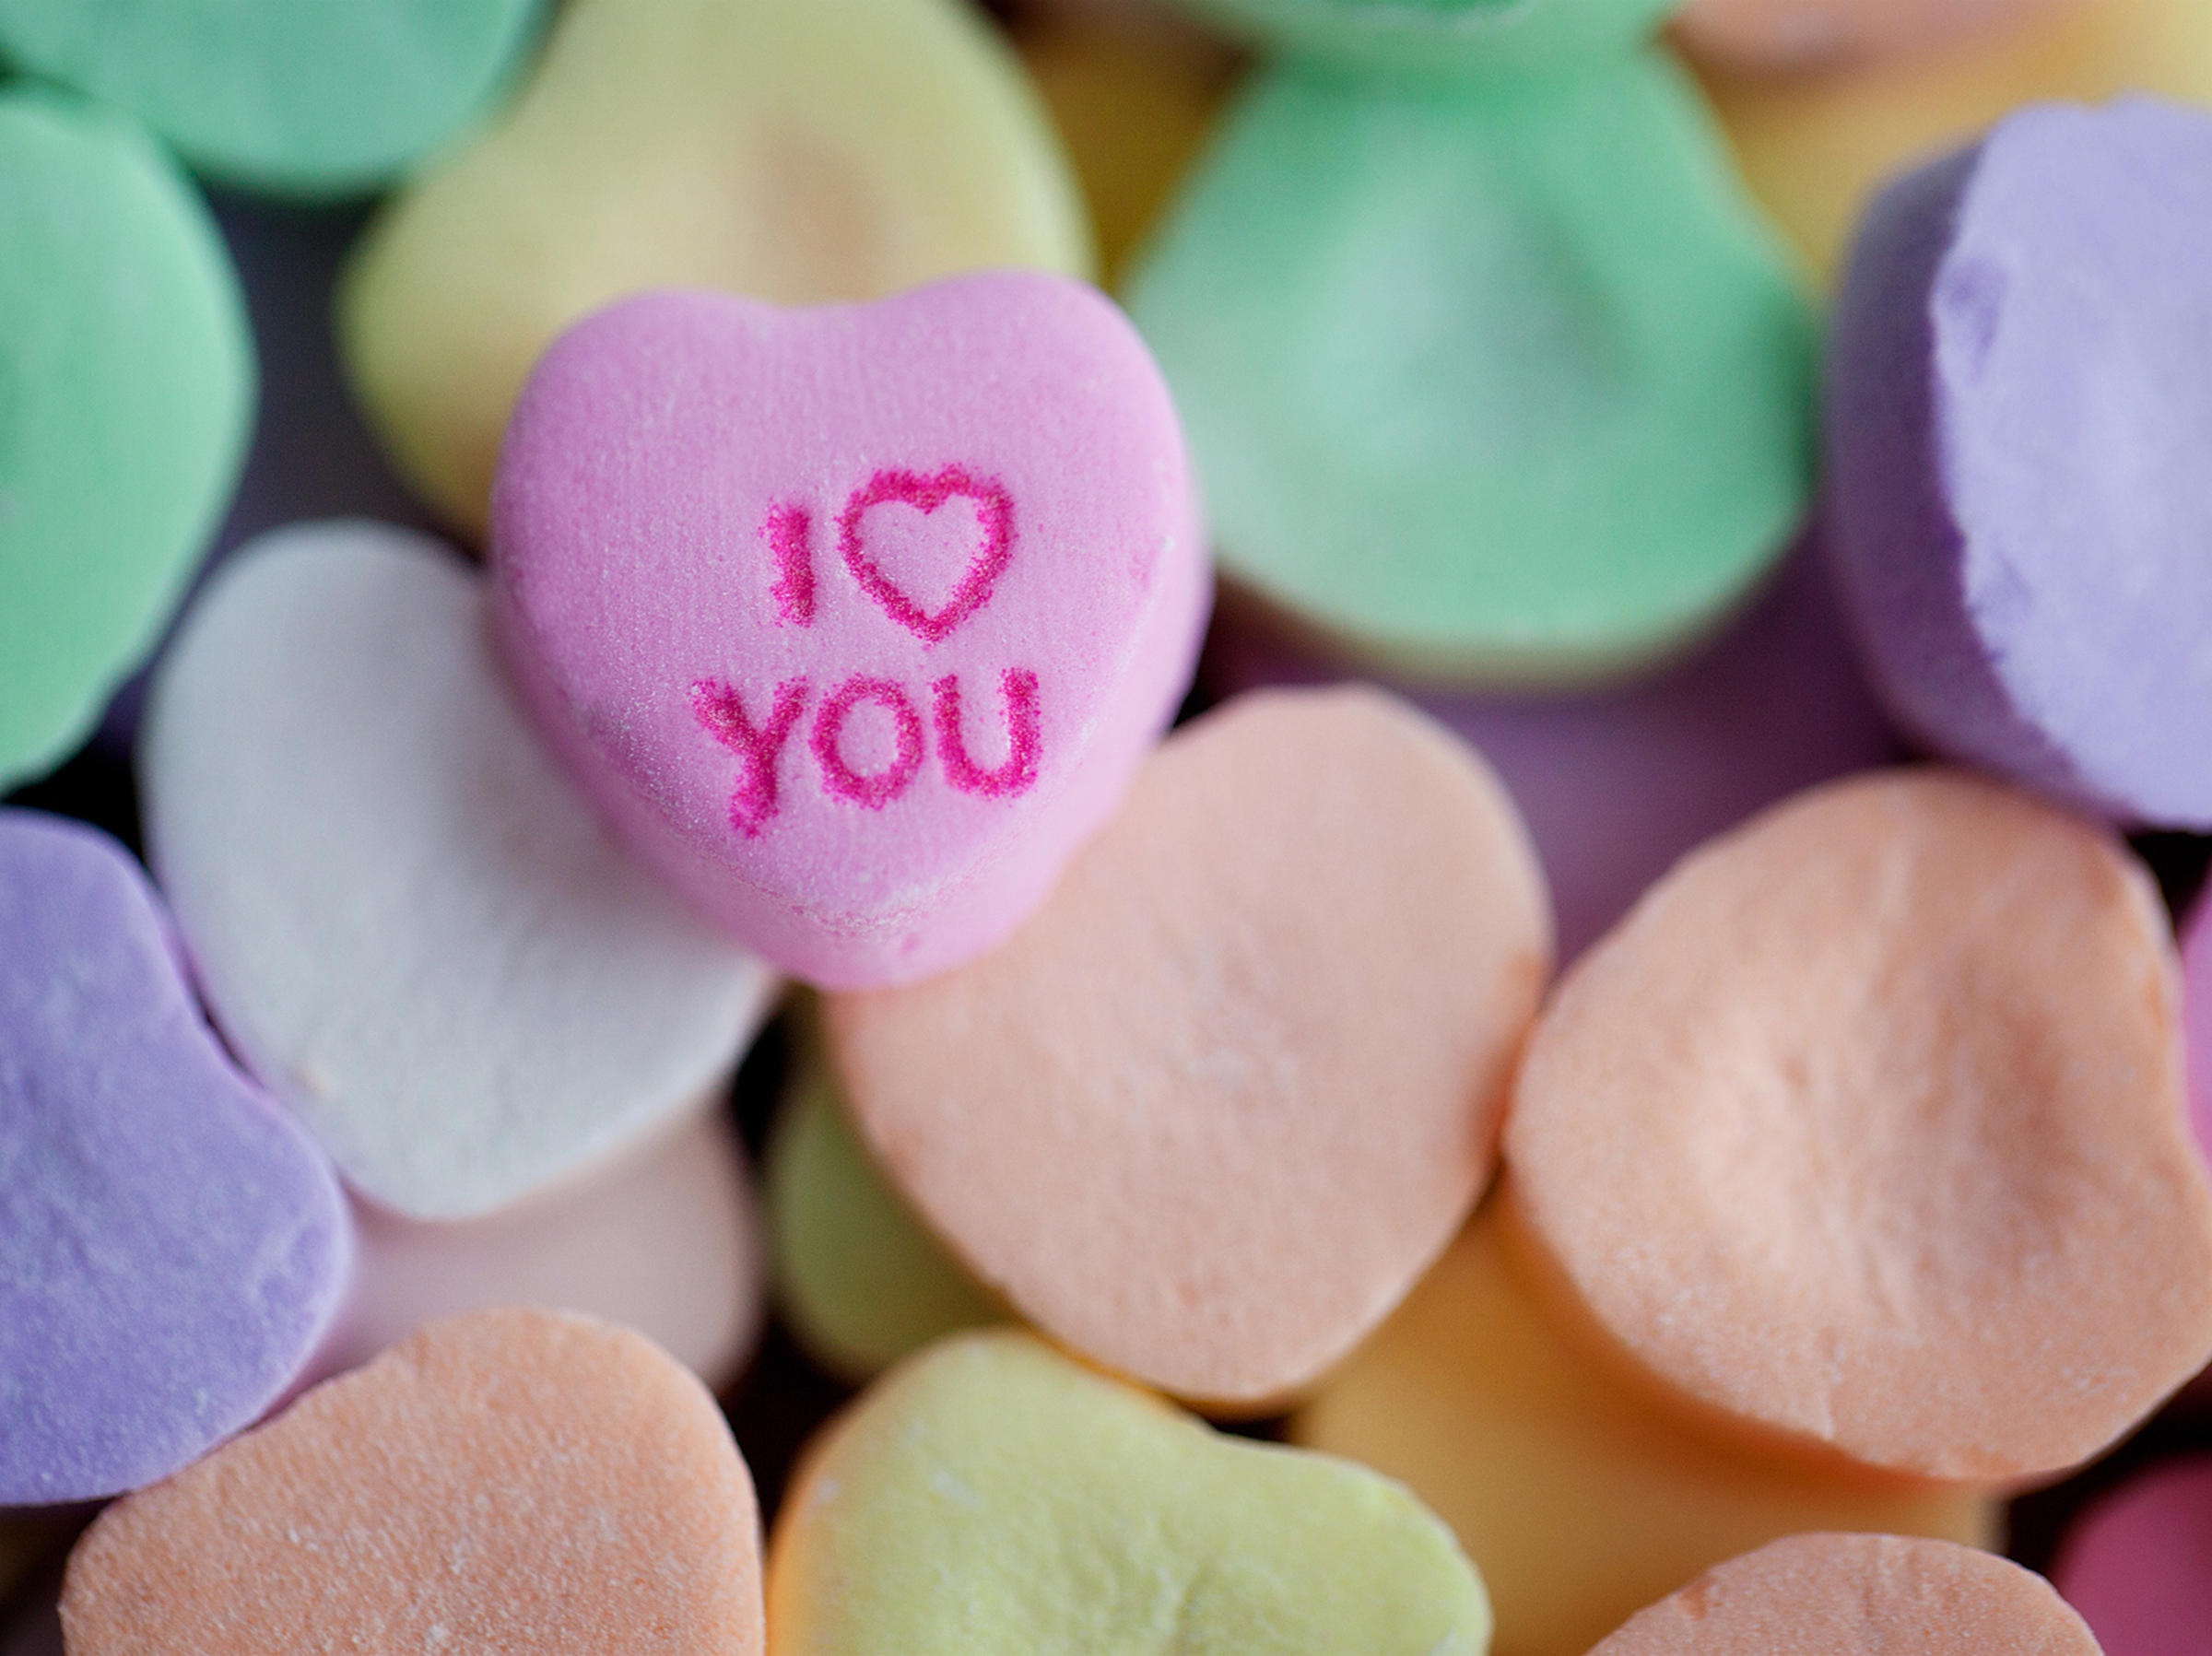 Candy Heart Messages Getting Stale? Computer-Generated Options